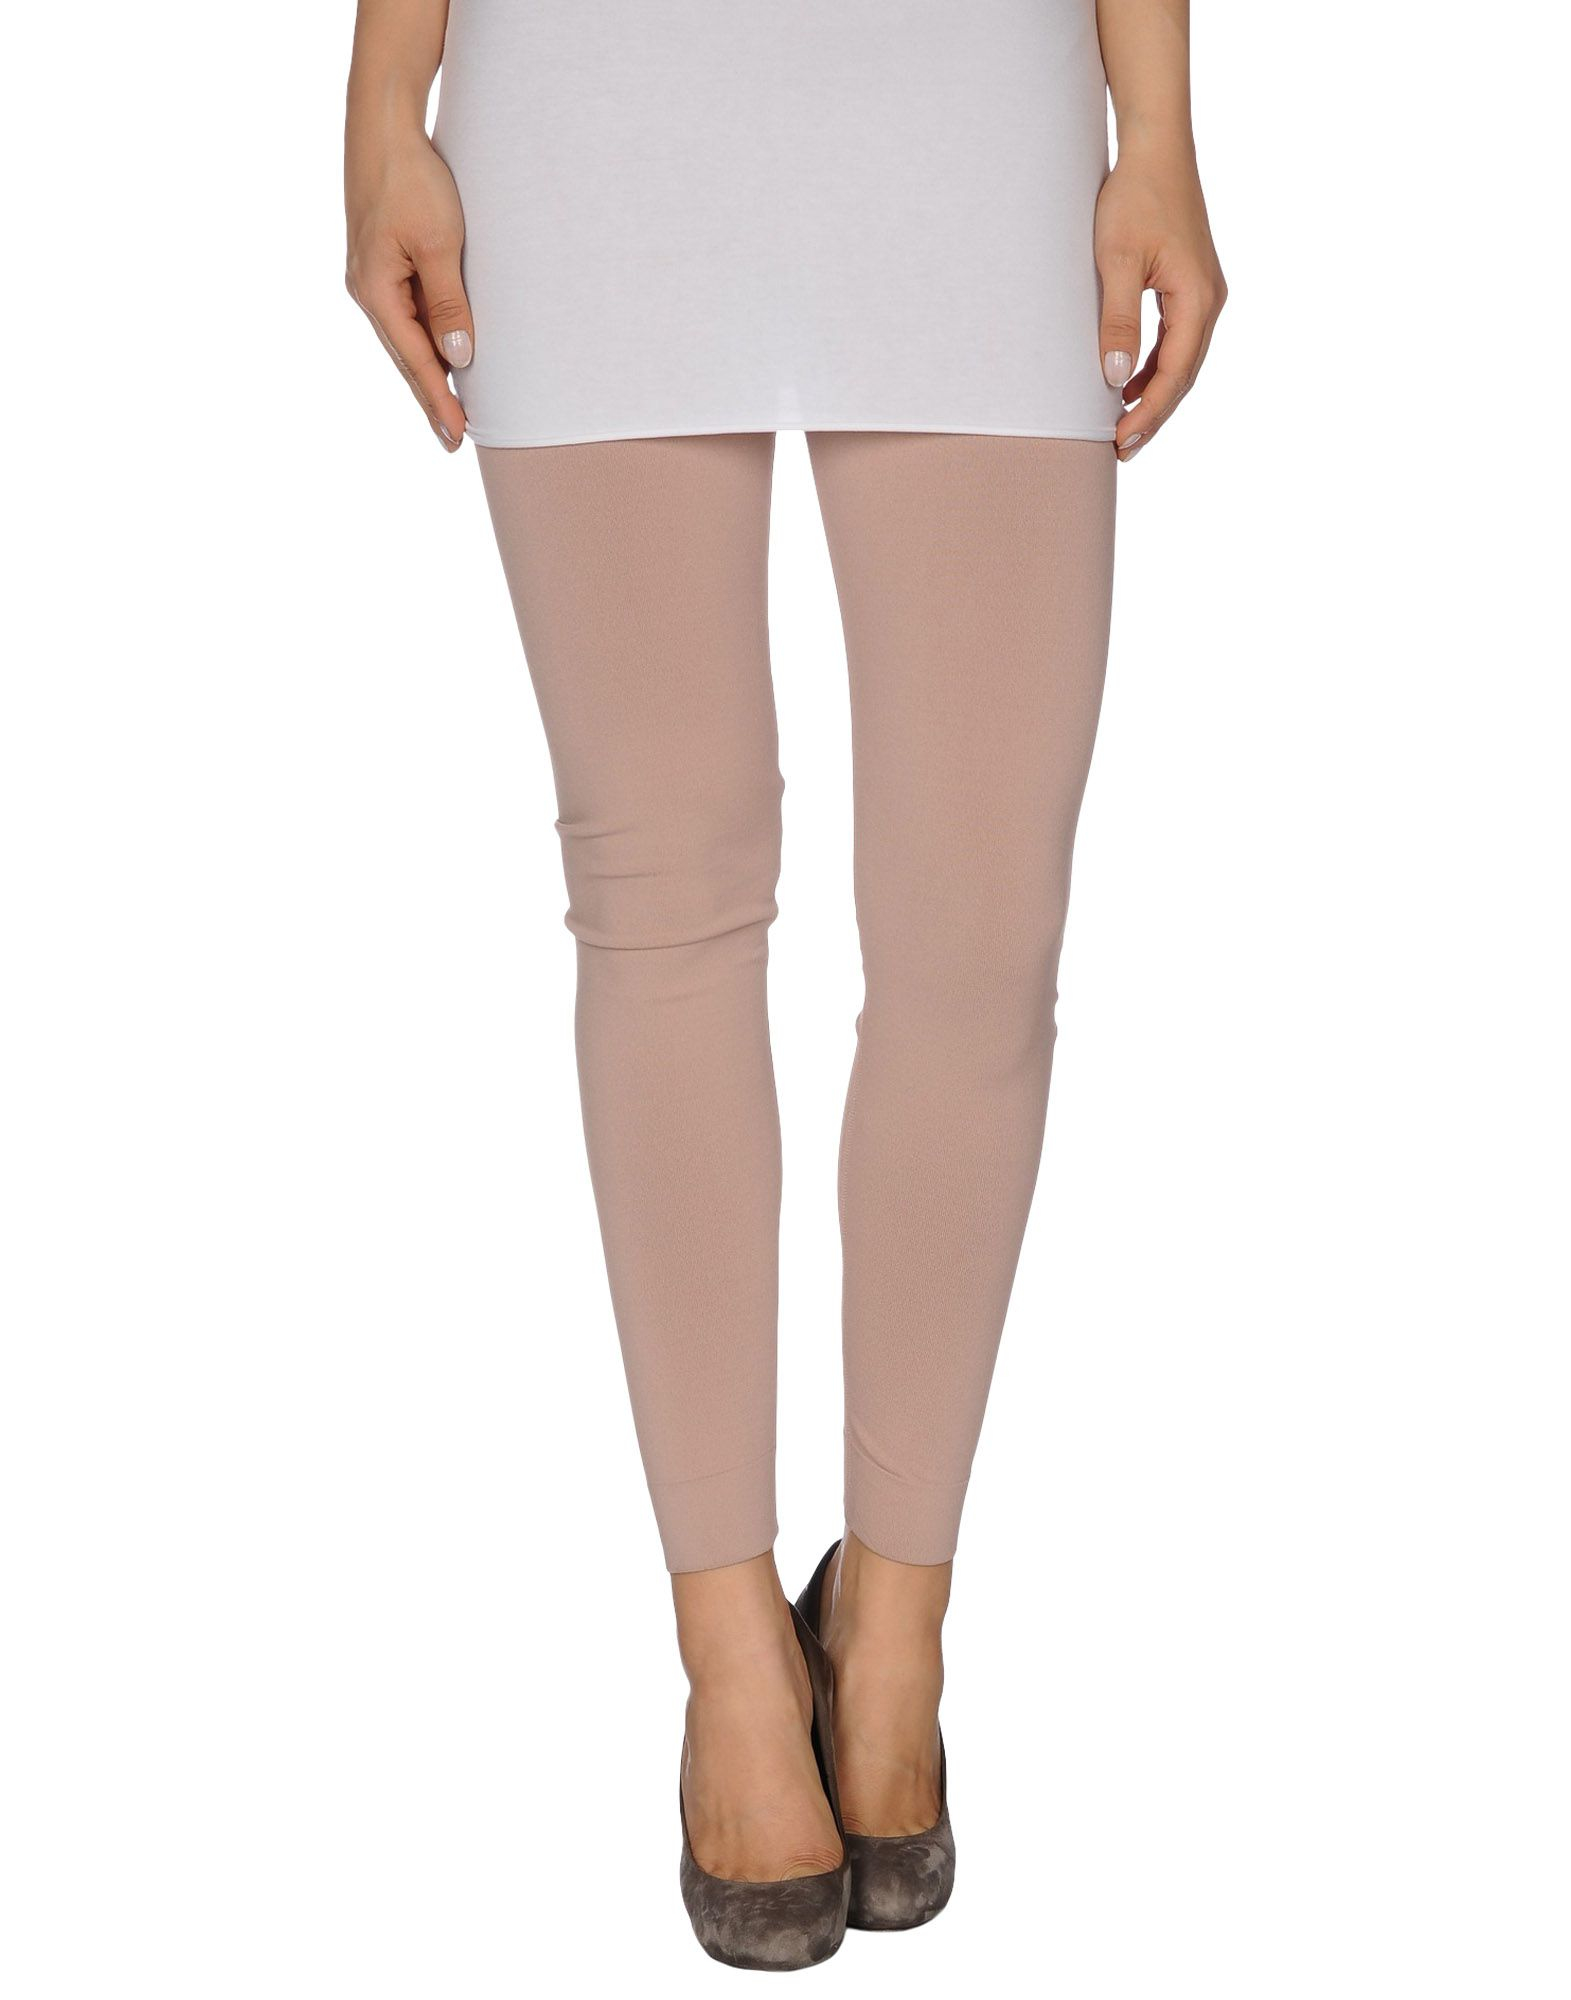 Alau00efa Leggings in Pink (Skin color) | Lyst